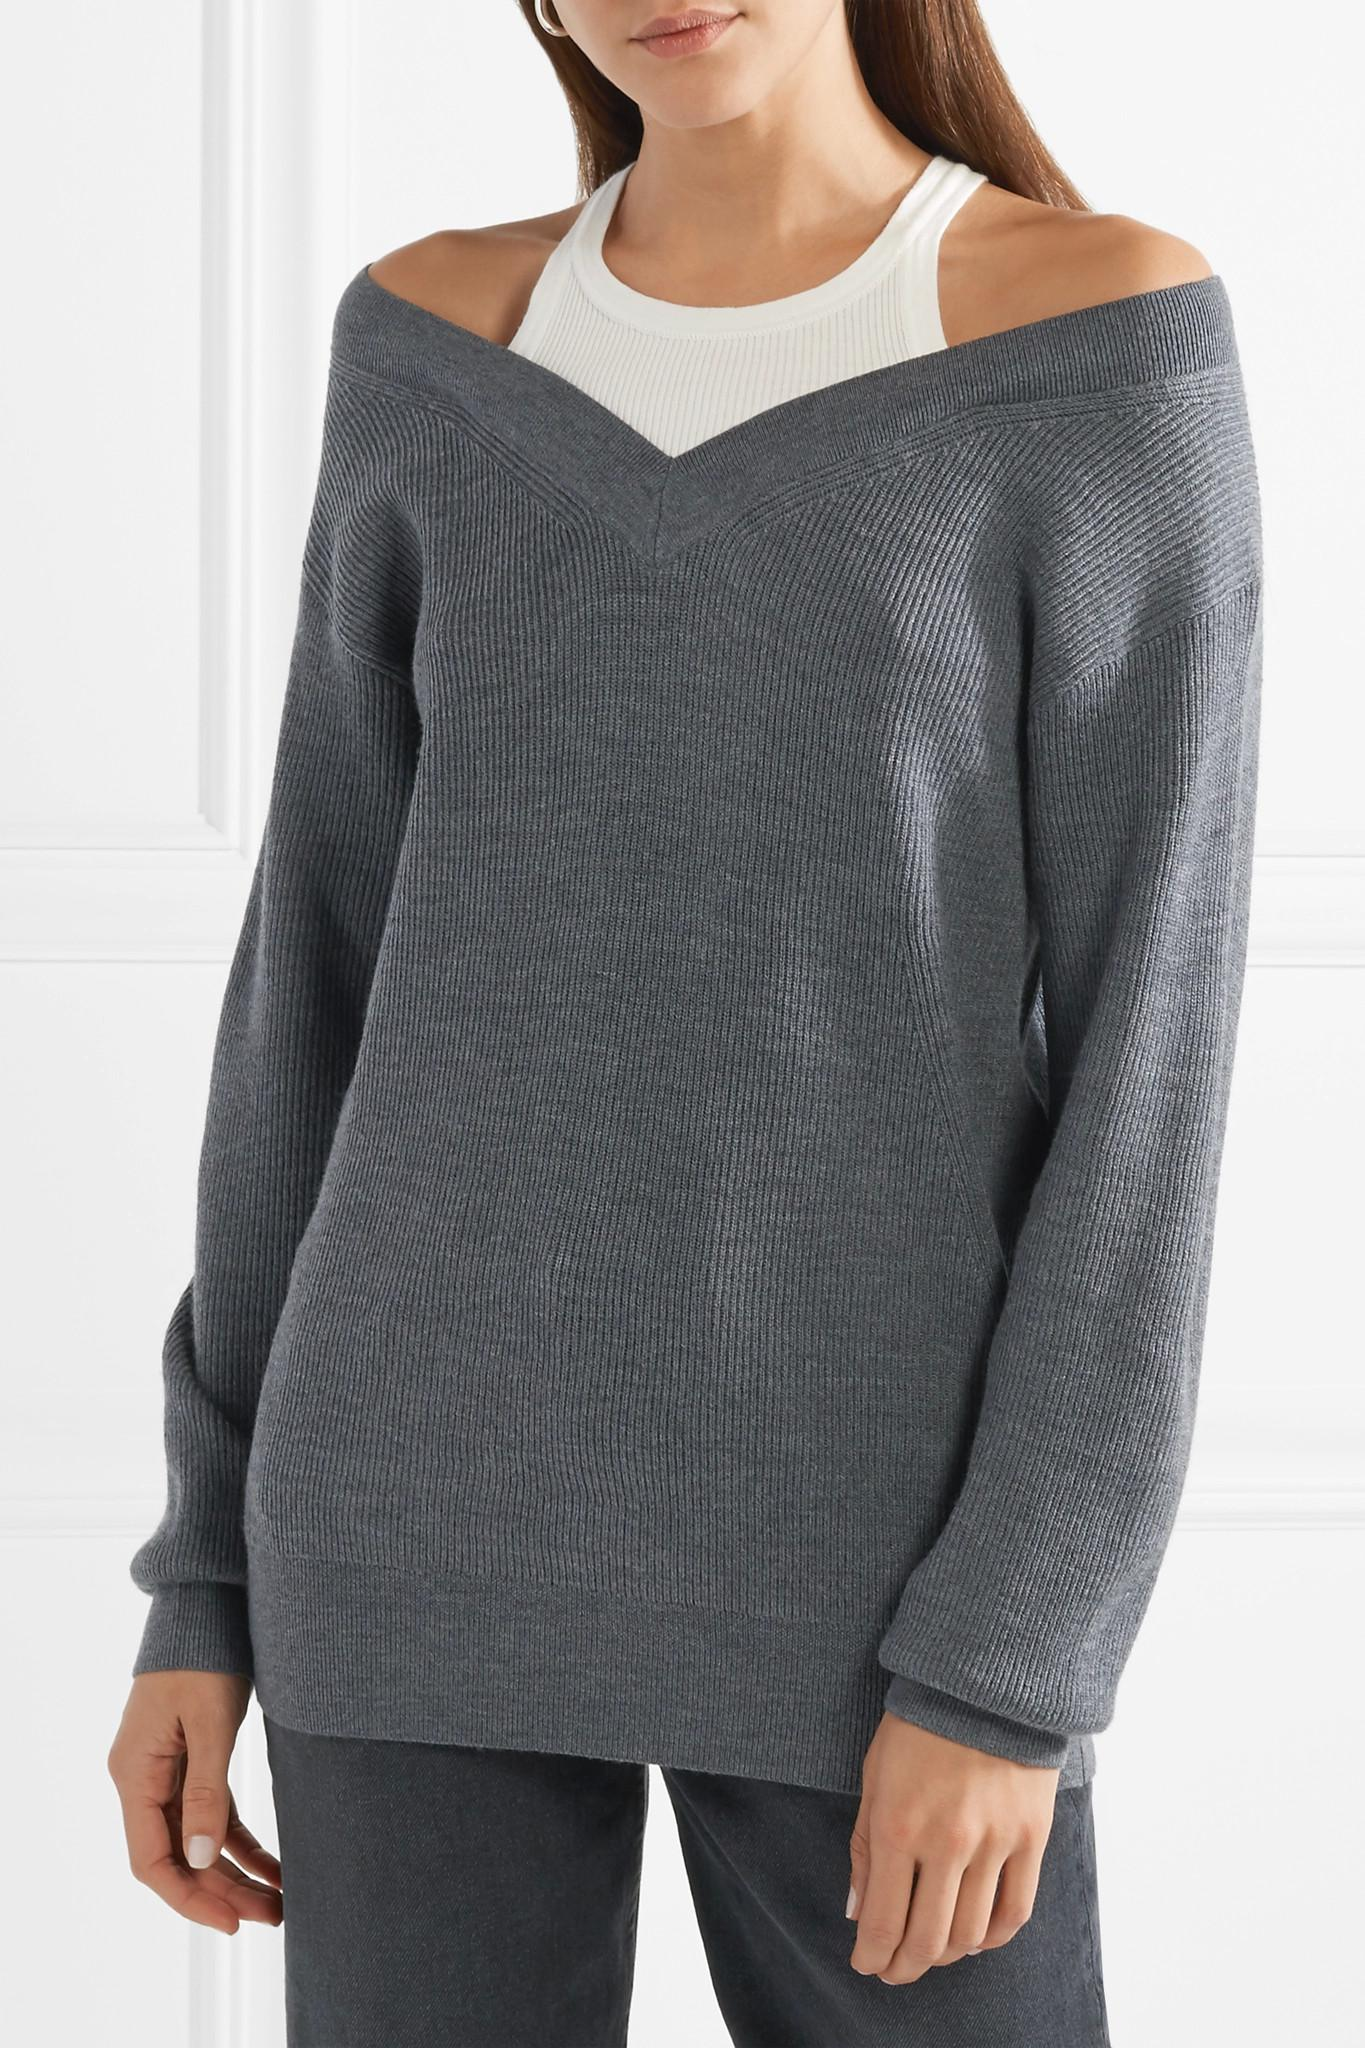 T by alexander wang Off-the-shoulder Layered Ribbed Merino Wool ...